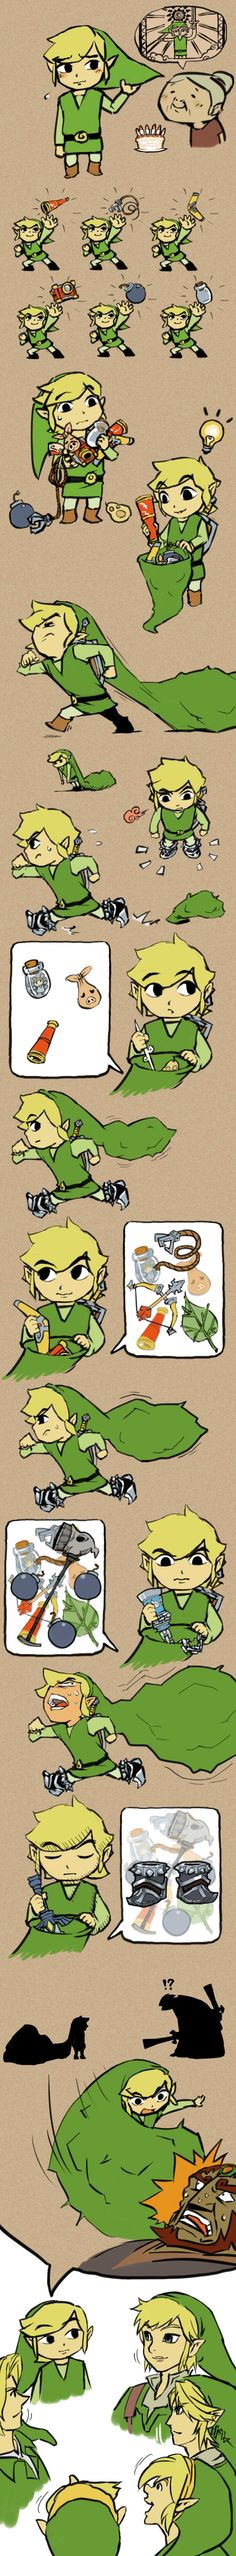 hahah that explains everything. #link #TheLegendOfZelda #Nintendo